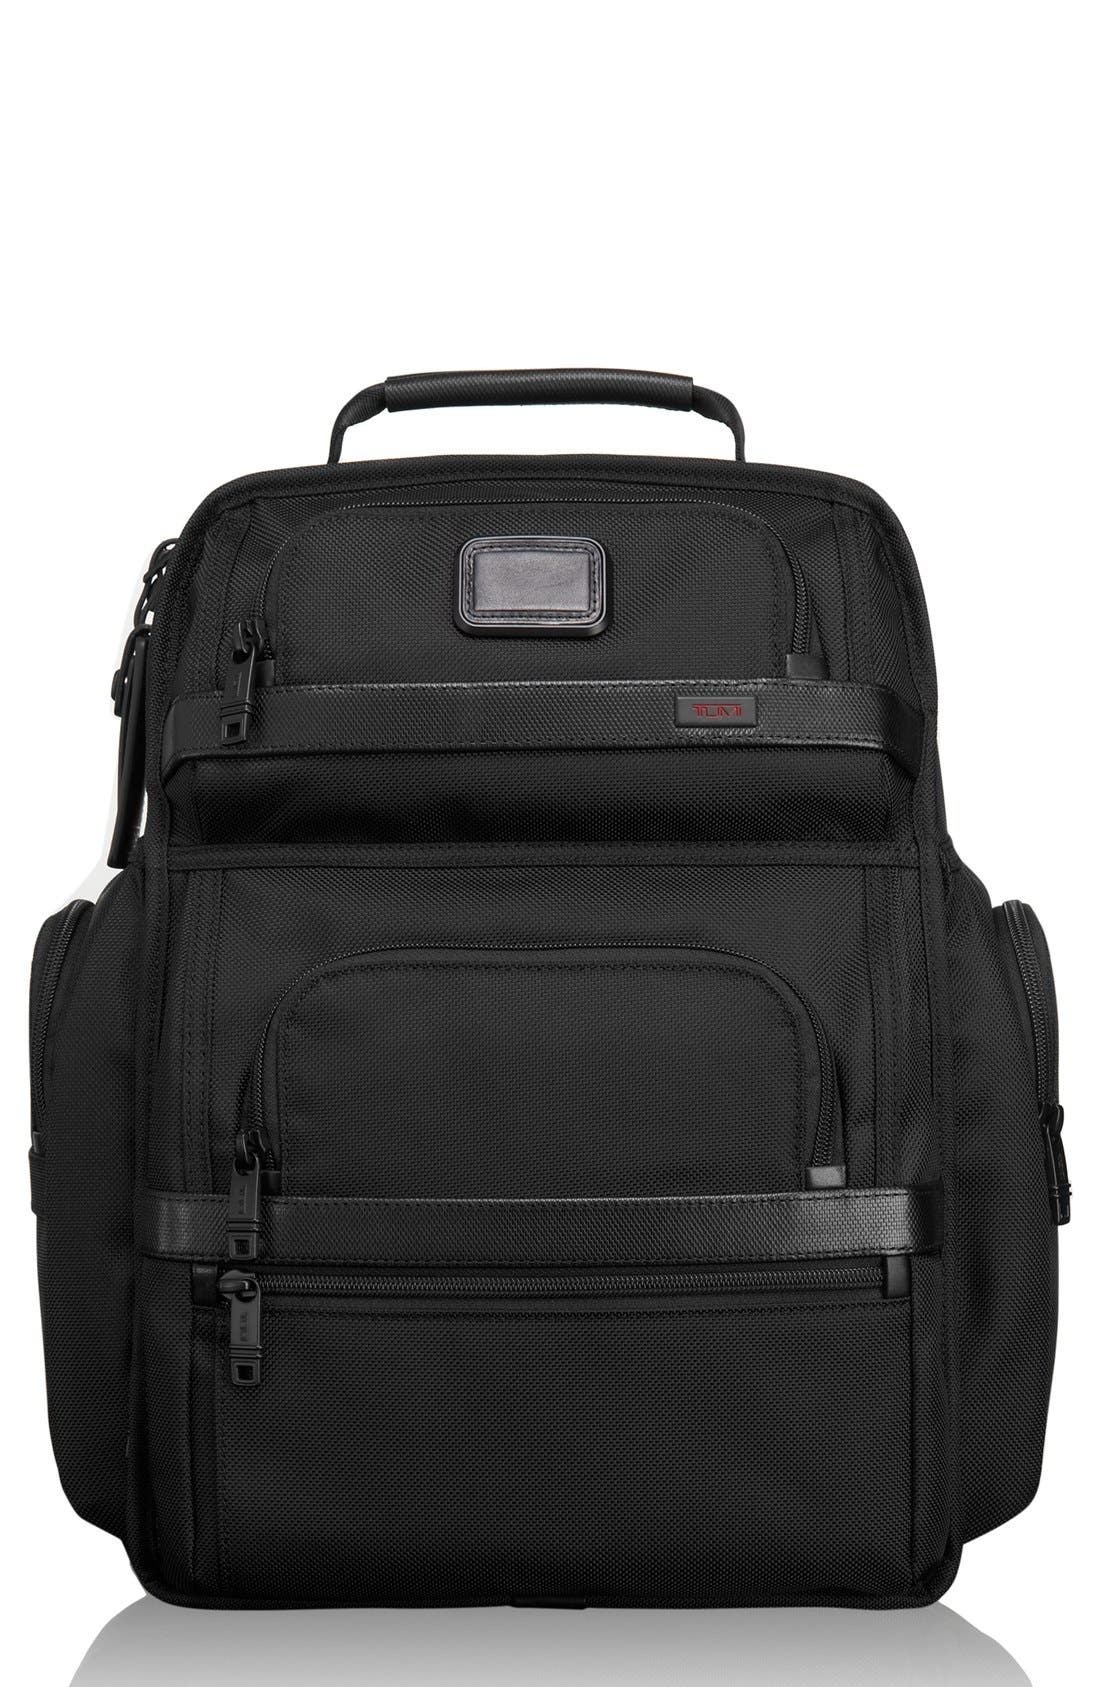 Alpha 2 T-Pass Laptop Brief Pack with Tumi ID Lock Pocket,                             Main thumbnail 1, color,                             007